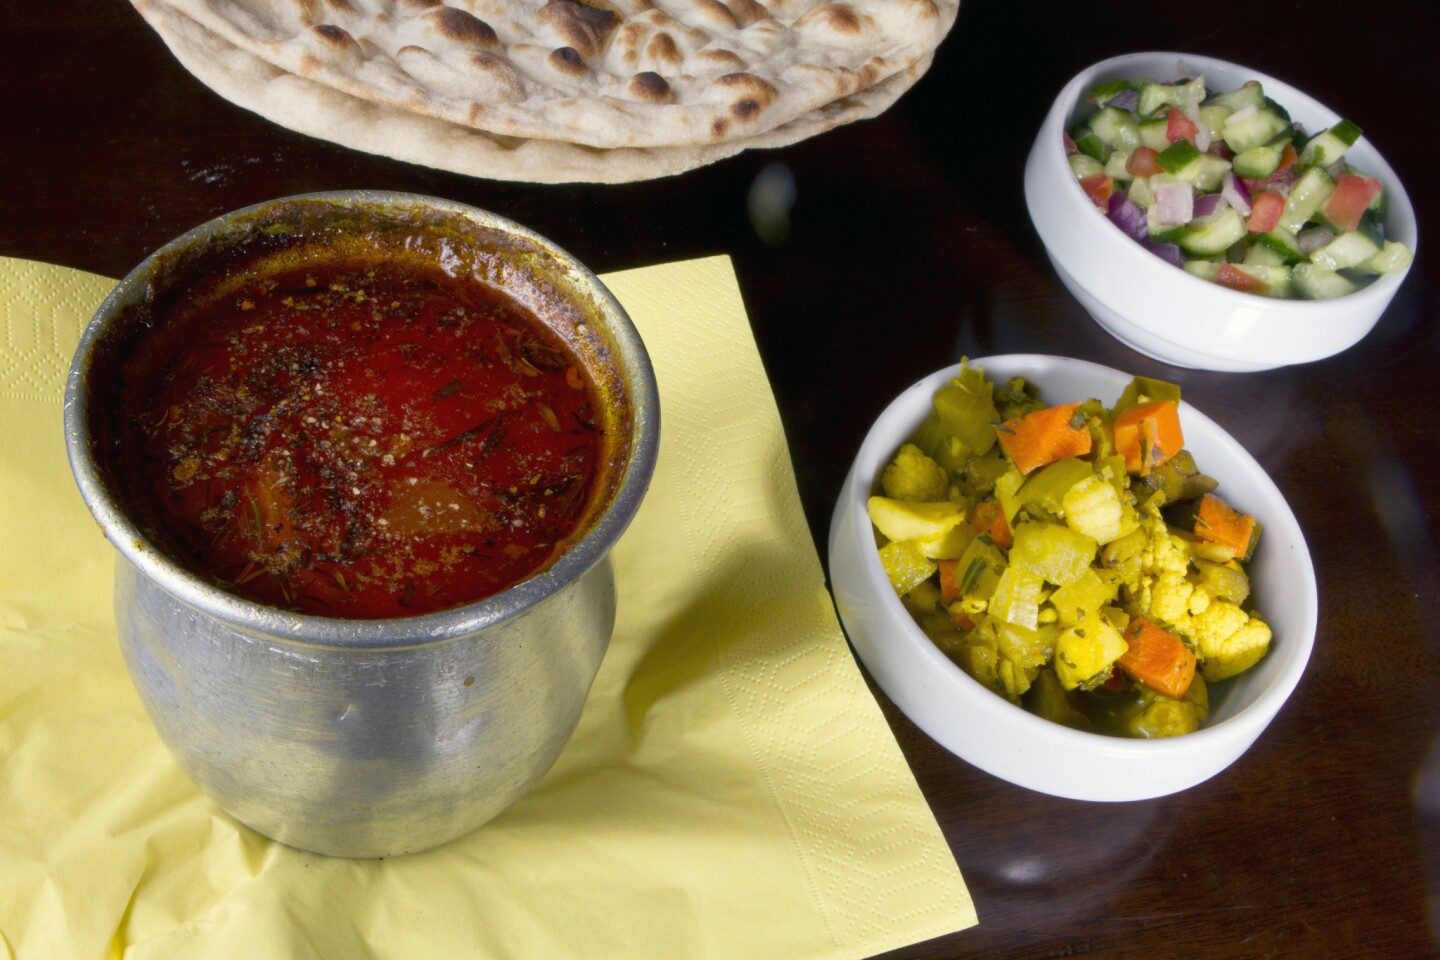 Dizi, left, a dish made with lamb meat, potato, tomato, turmeric and garbanzo and white beans baked in the oven for three hours, at Nersses Vanak Persian restaurant in Glendale.